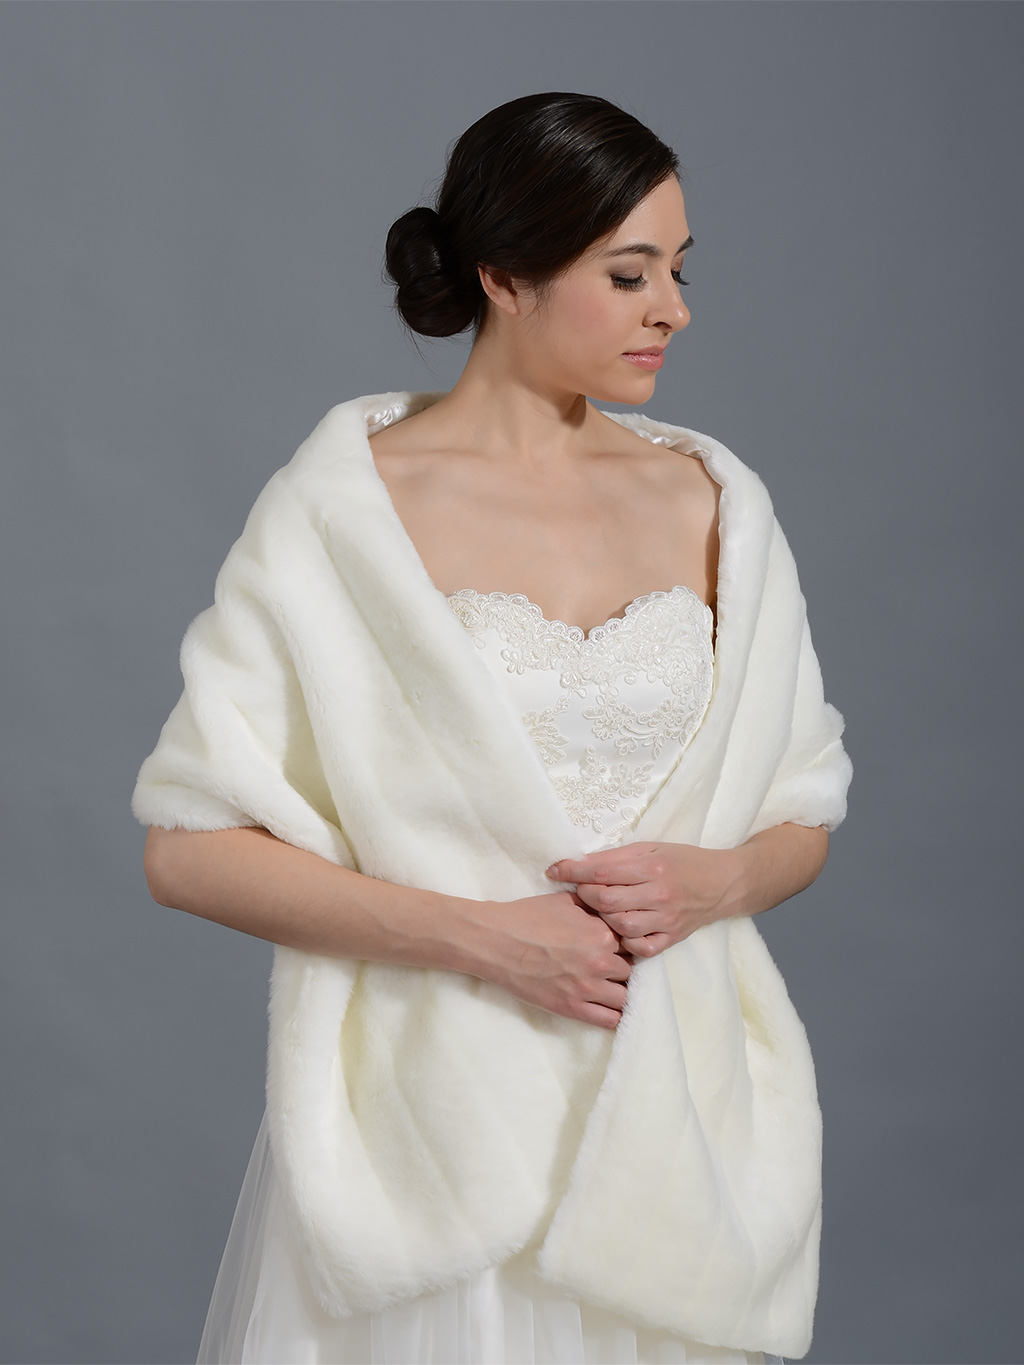 Faux Fur Stole Bridal Wrap Shrug Shawl Ivory And White